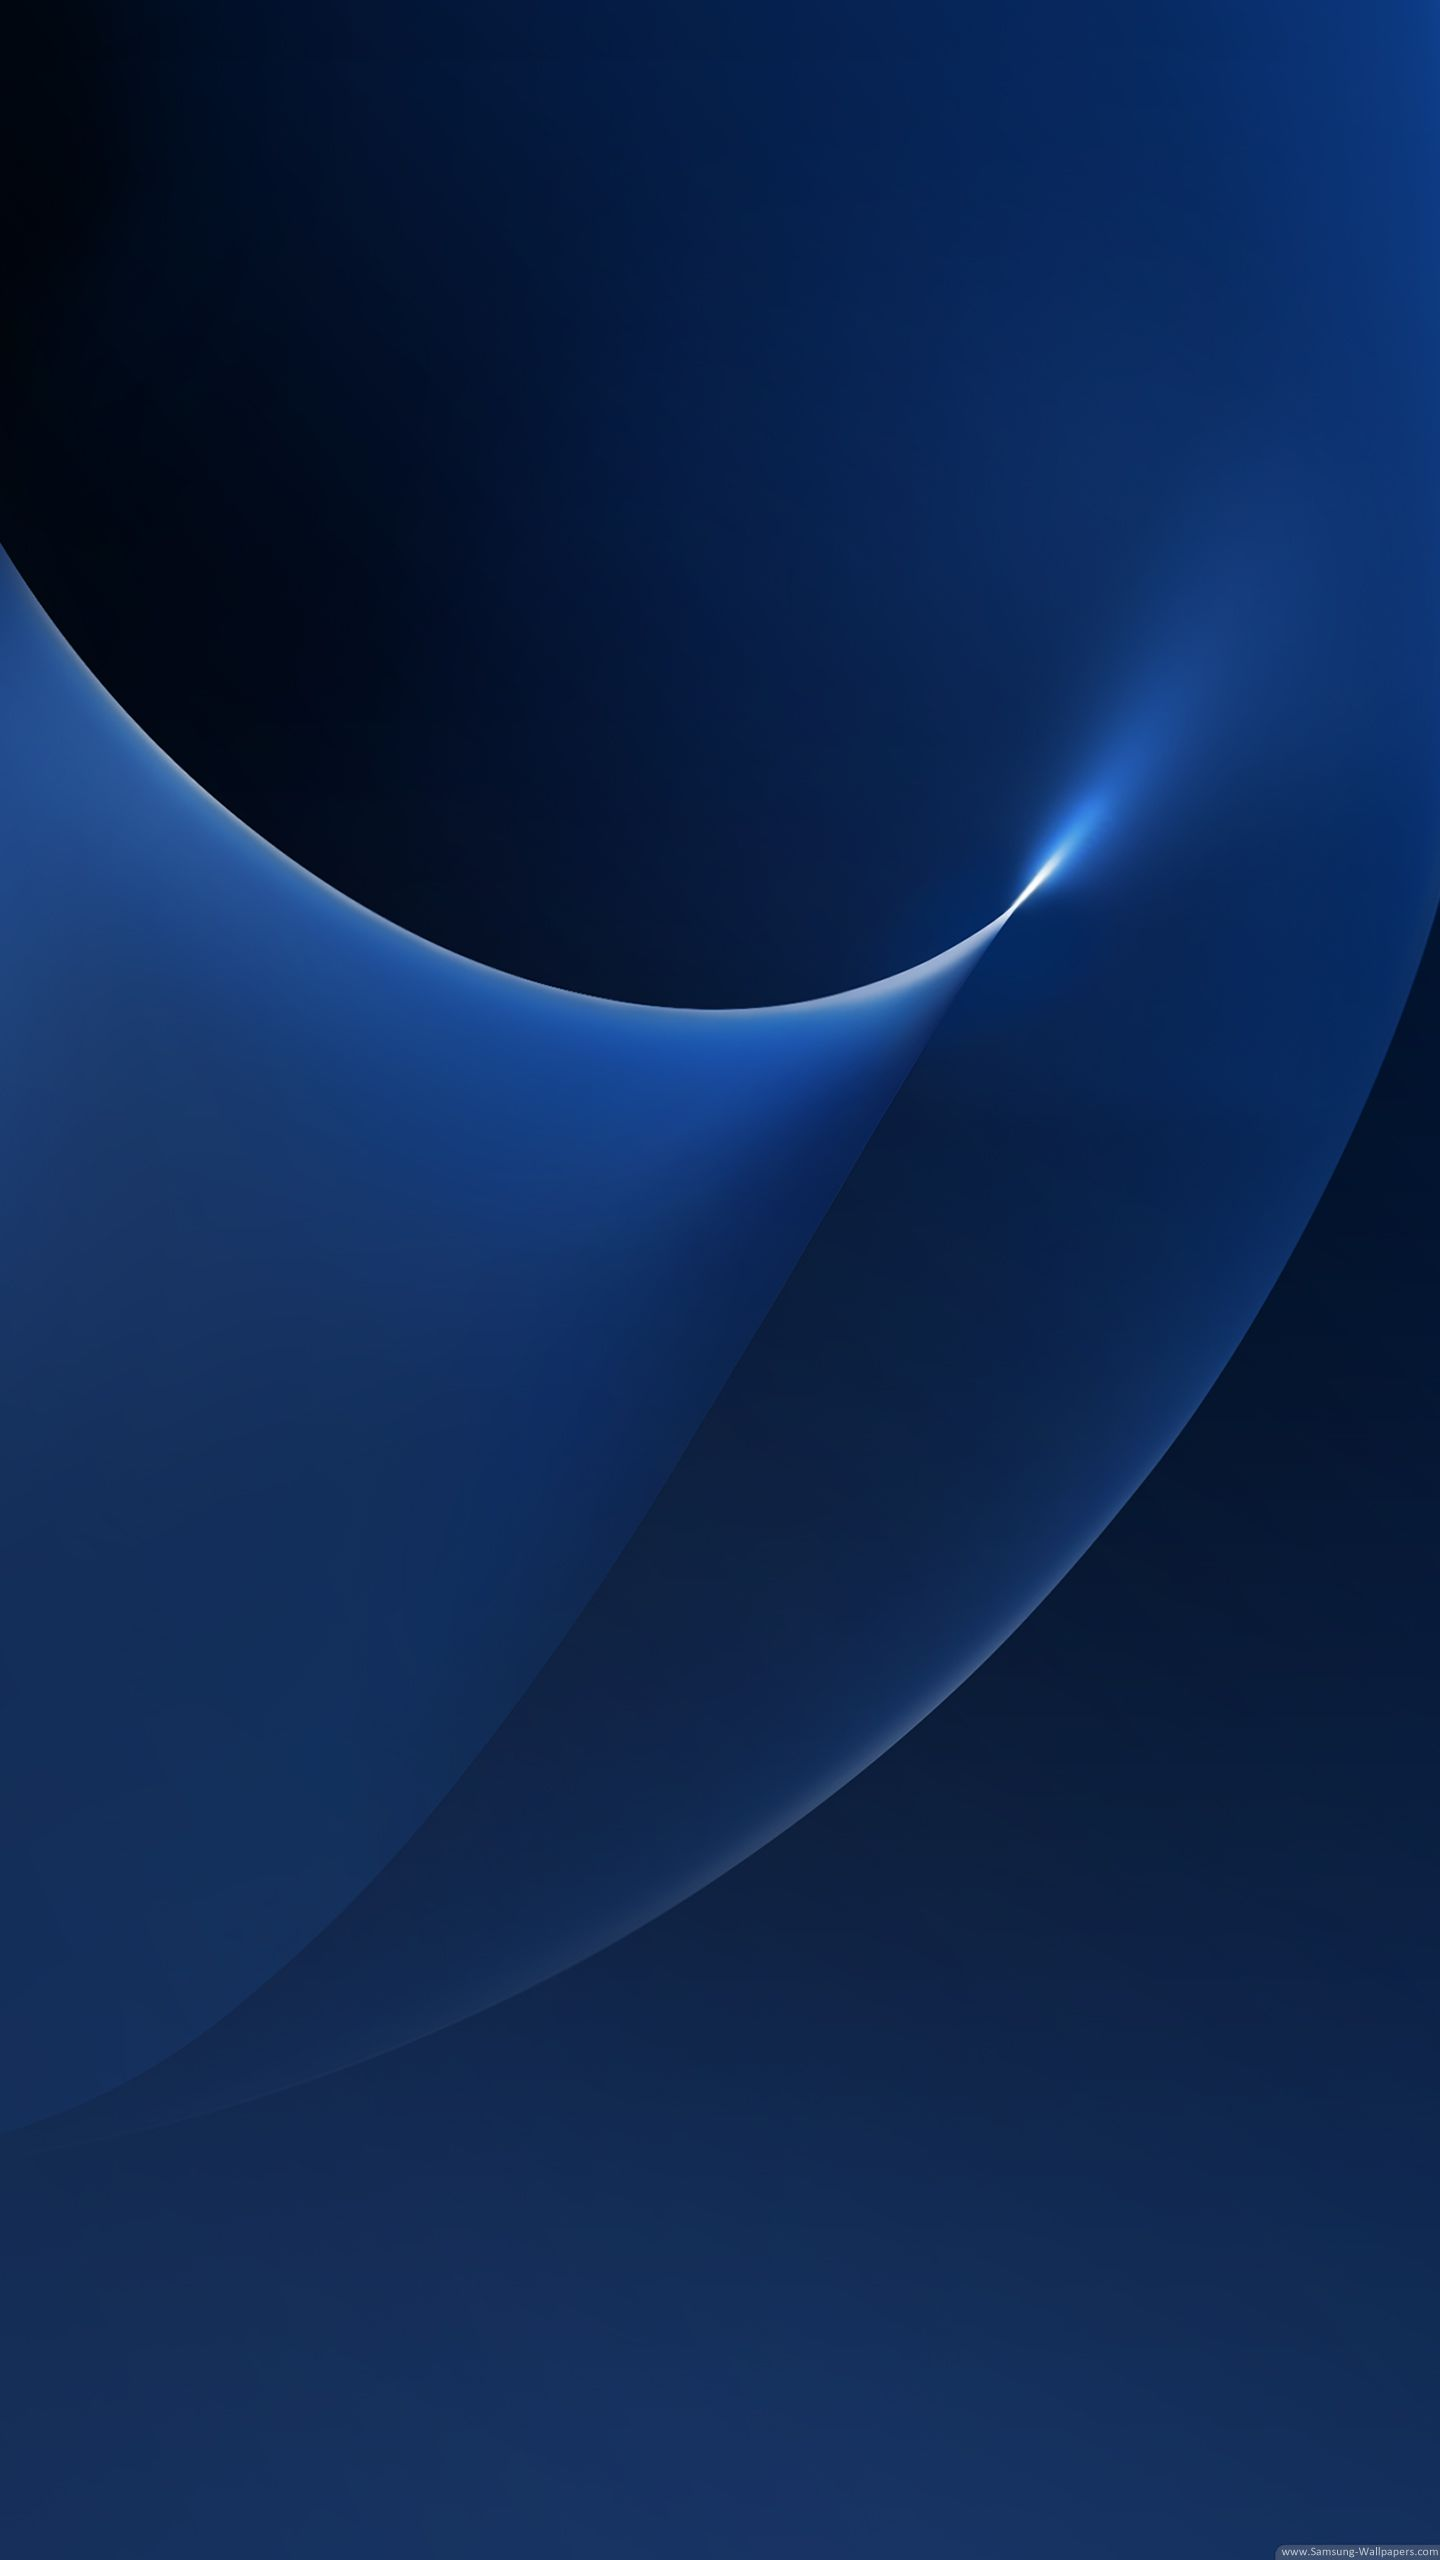 Samsung wallpaper s7 wallpapers pinterest samsung wallpaper s7 voltagebd Images